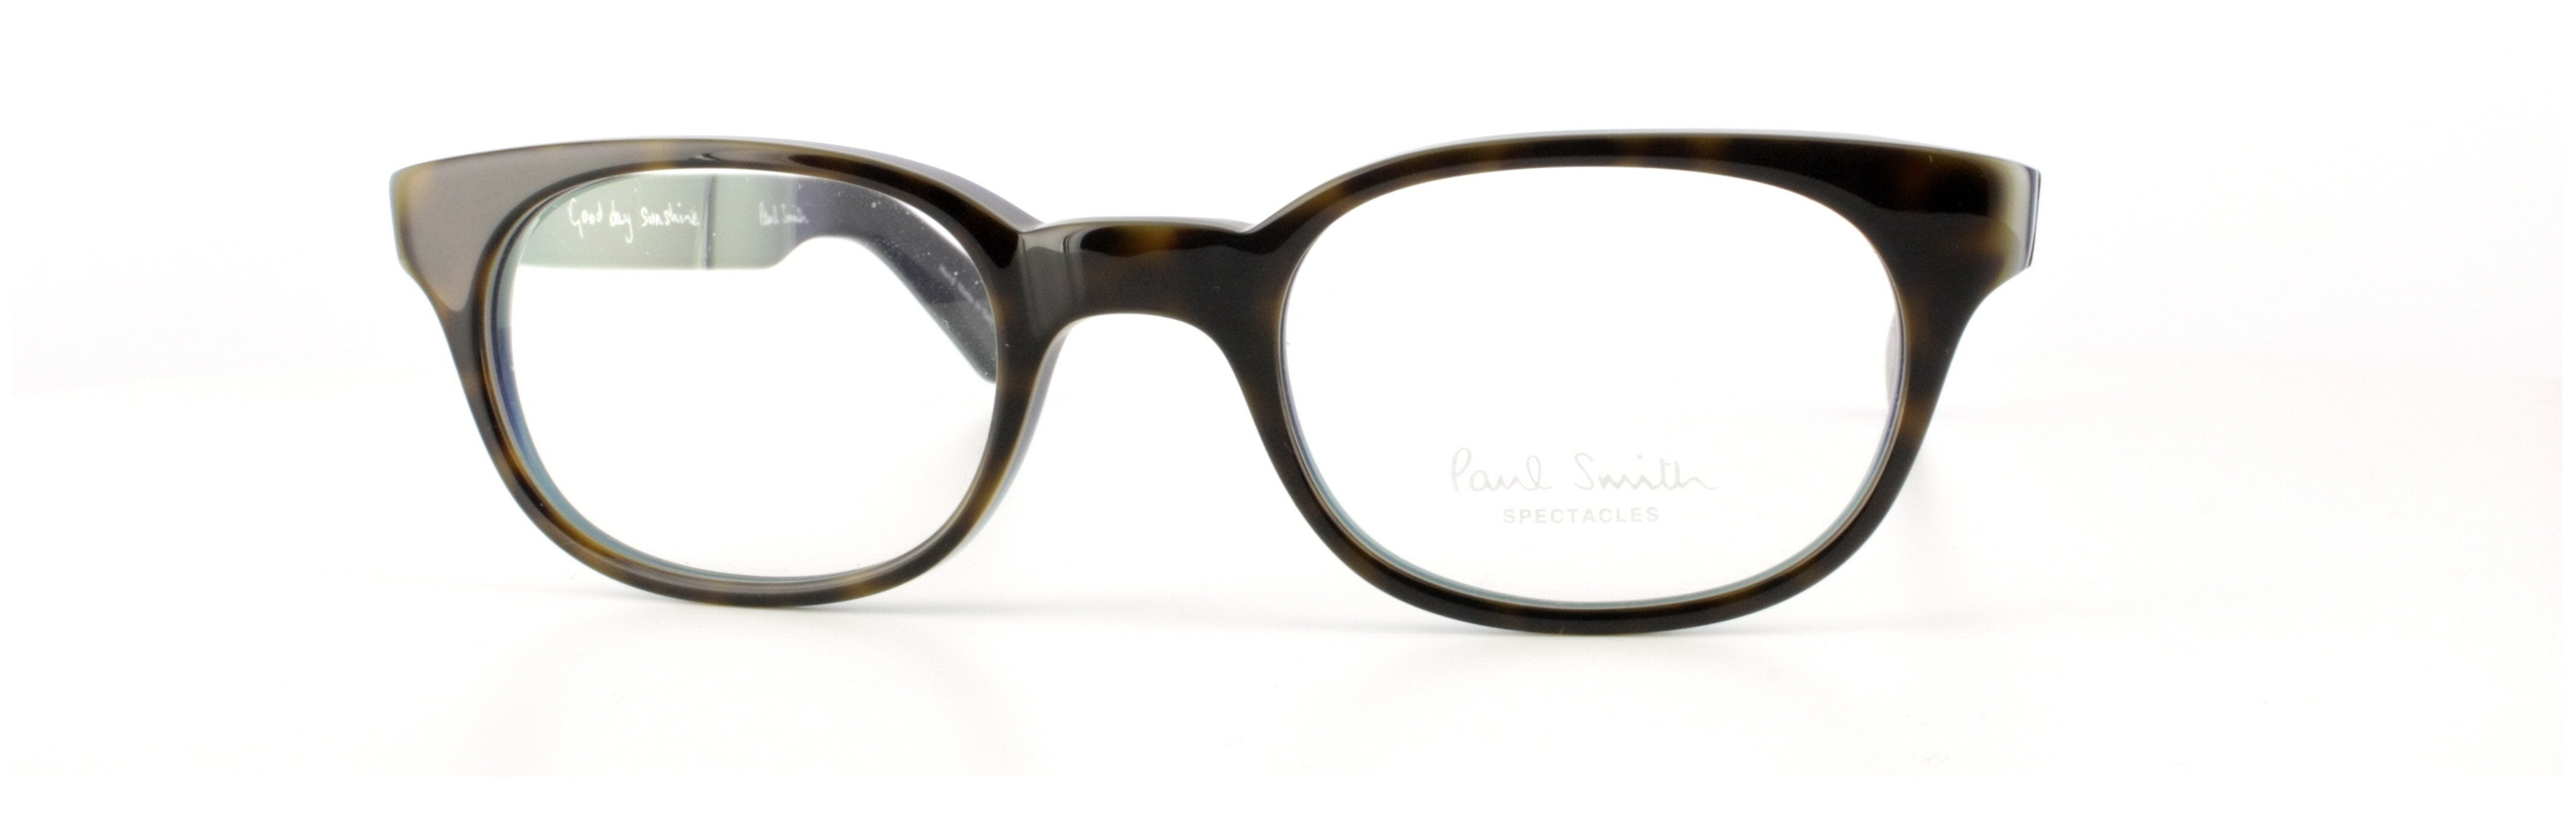 Paul Smith PM 8185 1223 Albany – Mad About Specs - Glasses Online